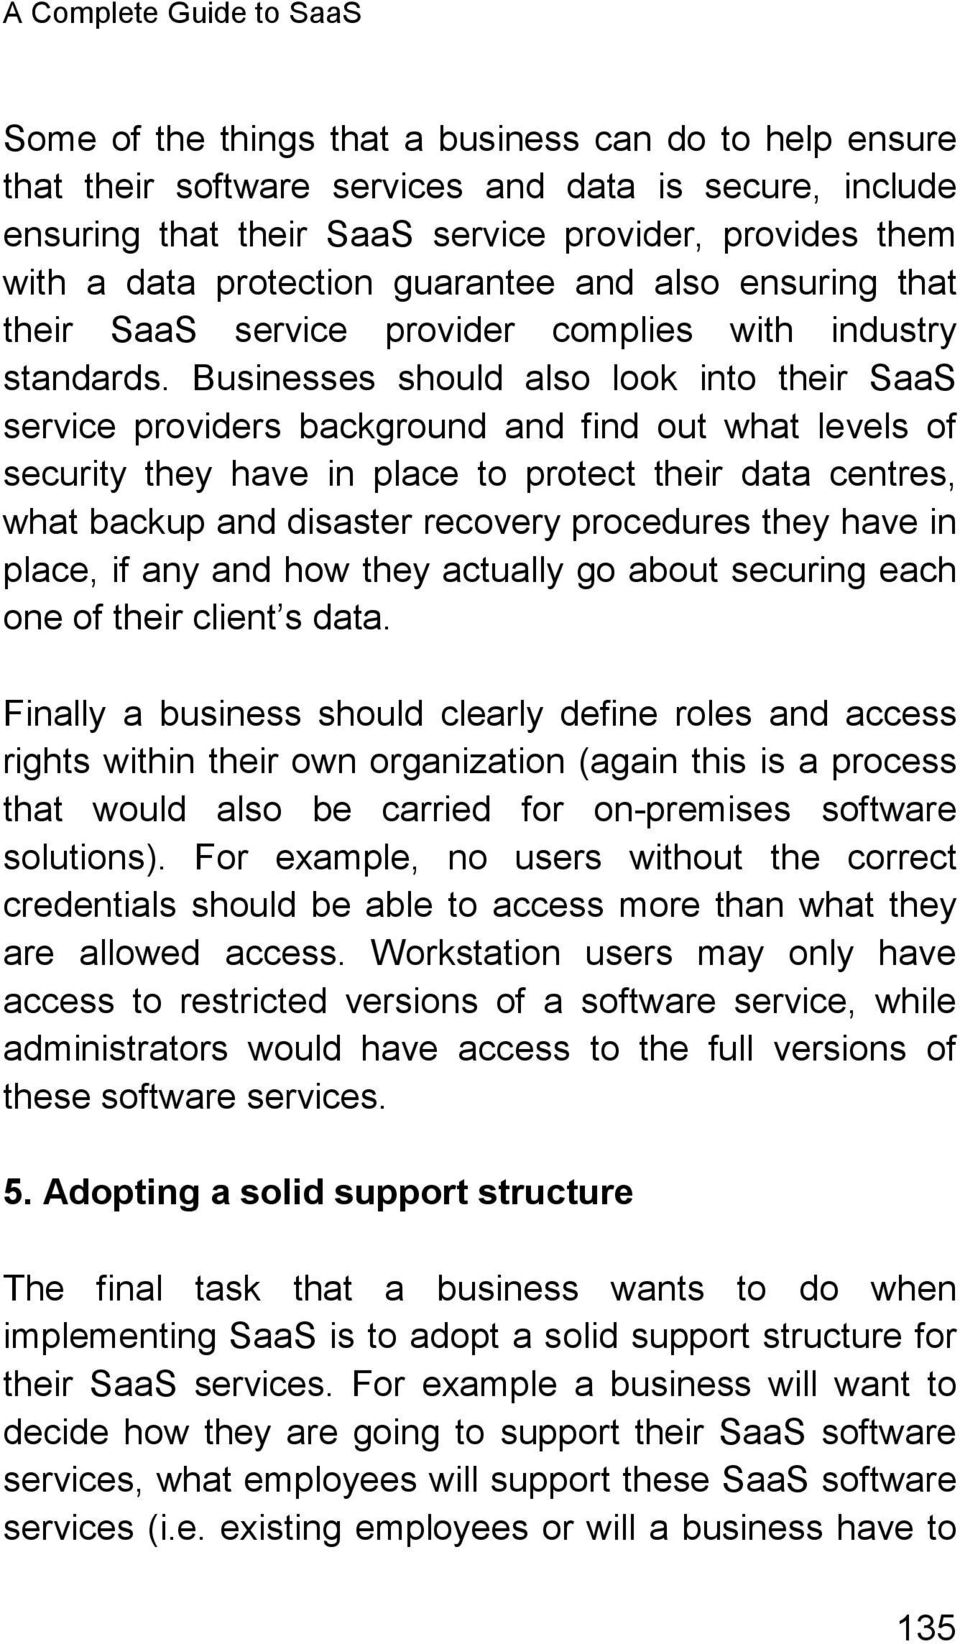 Businesses should also look into their SaaS service providers background and find out what levels of security they have in place to protect their data centres, what backup and disaster recovery